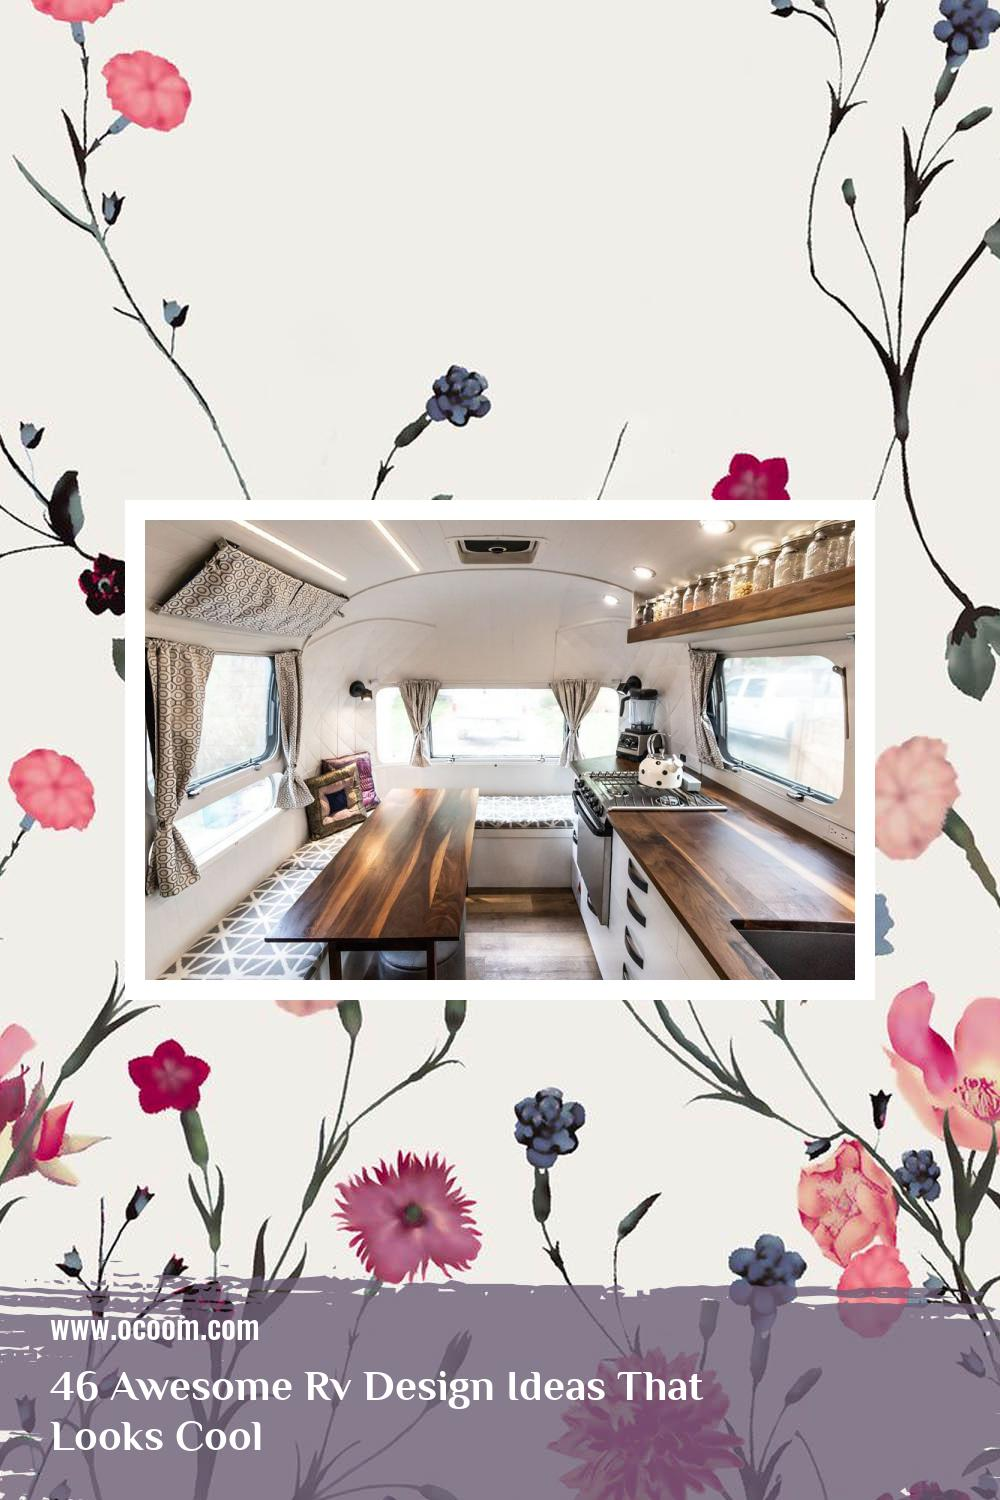 46 Awesome Rv Design Ideas That Looks Cool 45